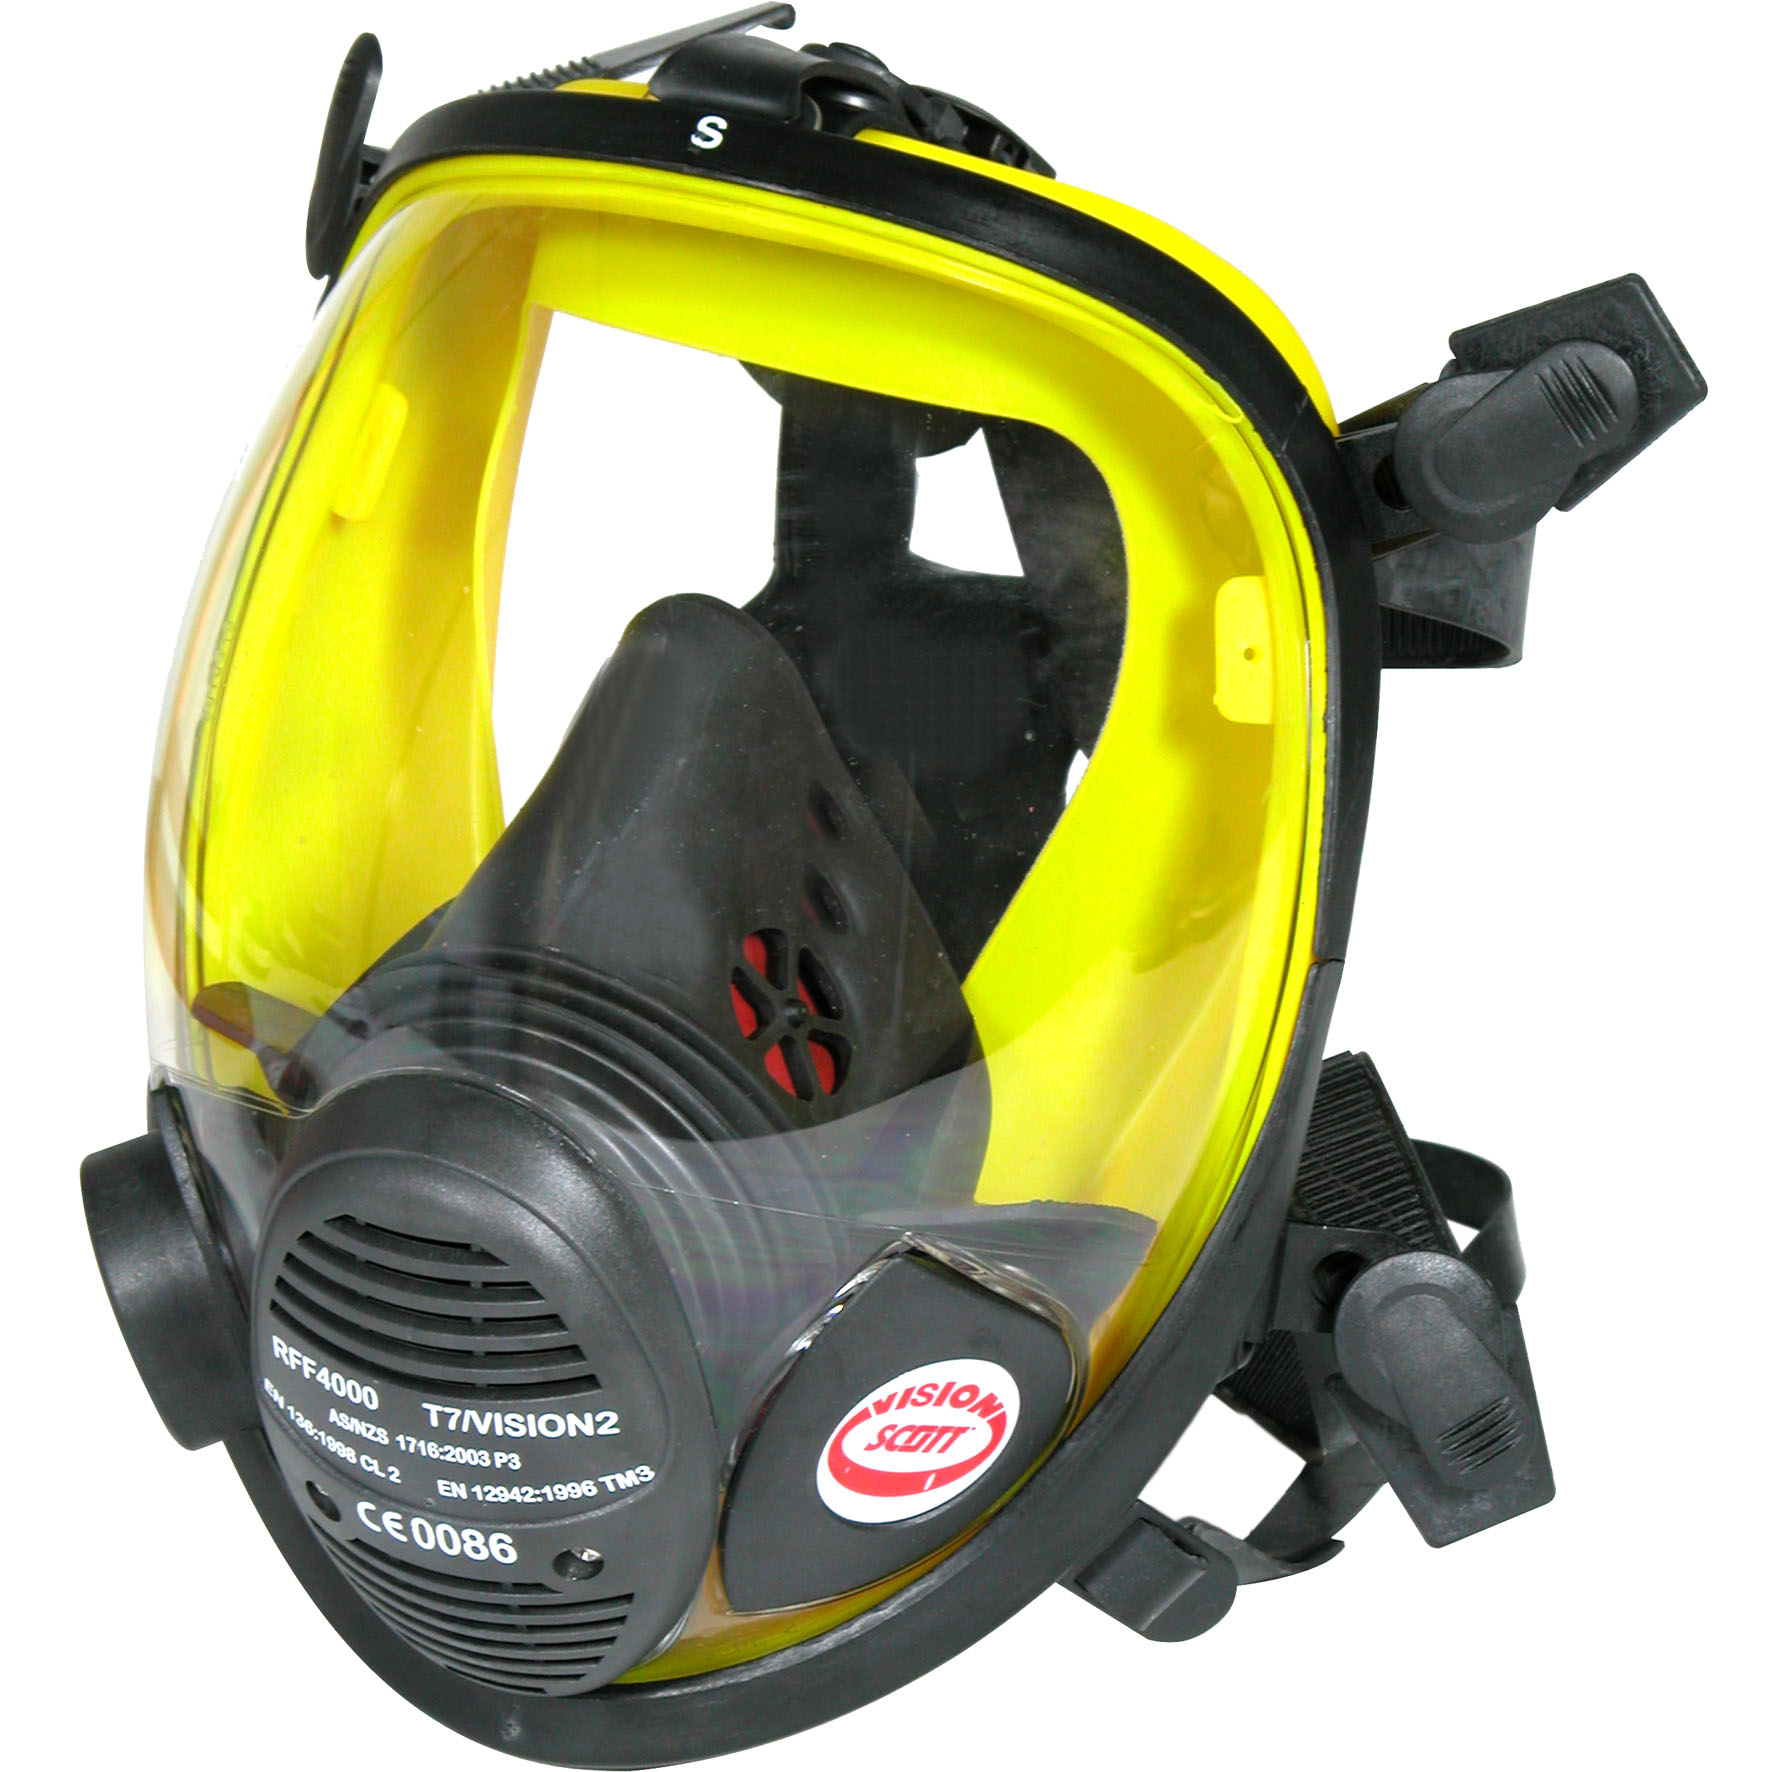 Full Face Filter Respirators